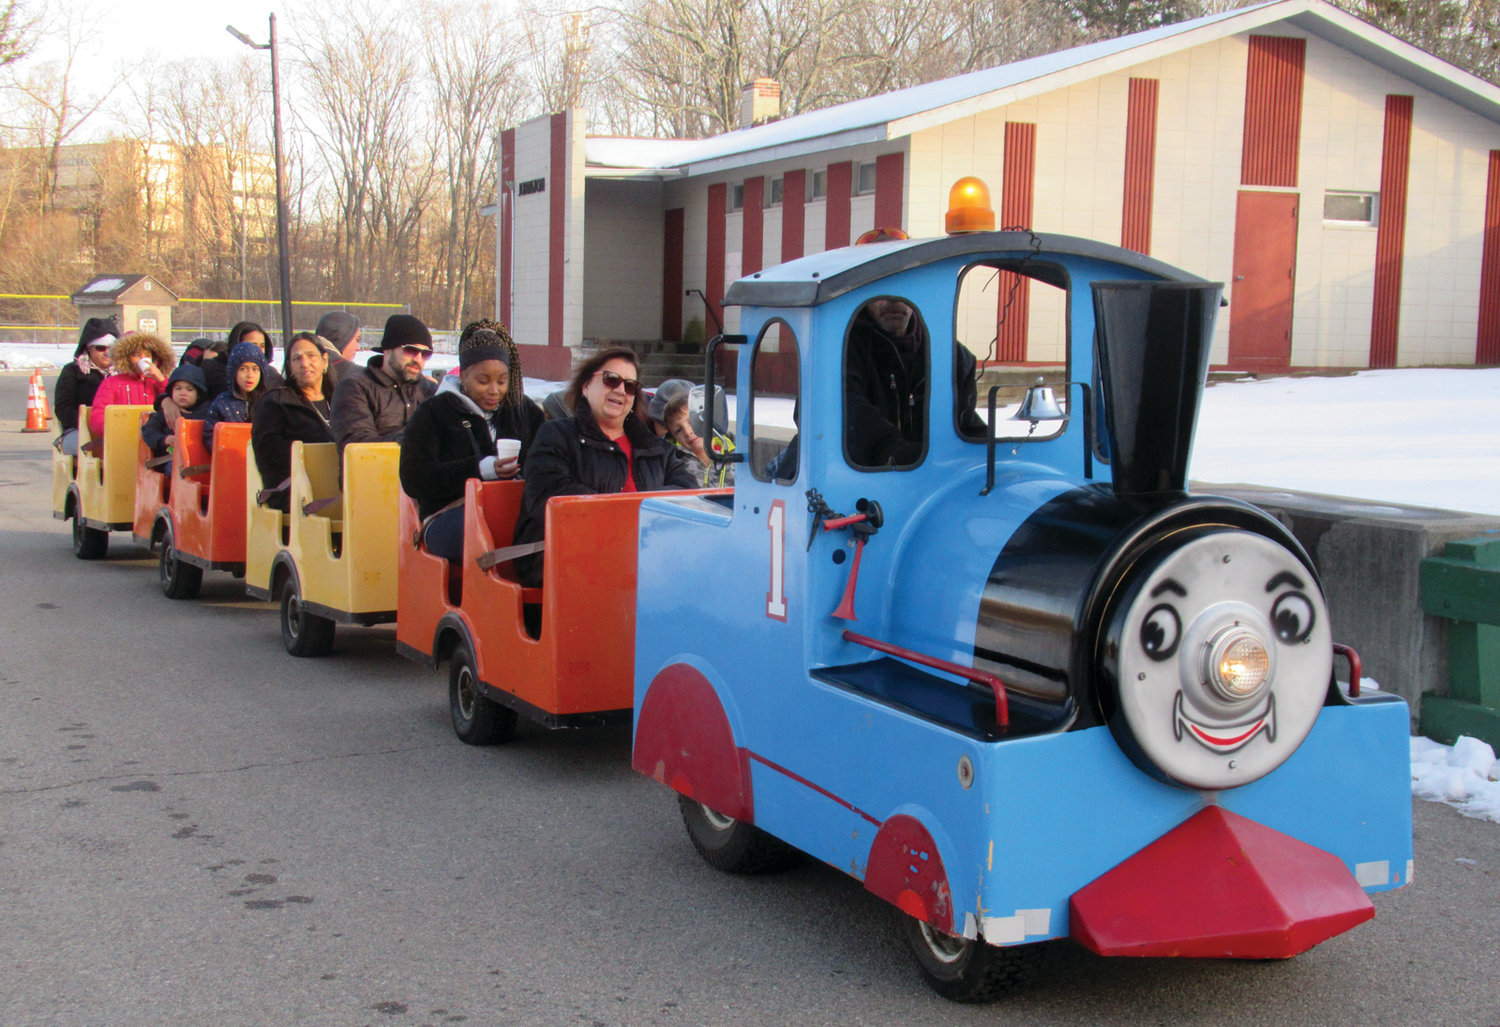 ALL ABOARD: That's the chant Jim Olson issued Saturday as he drove the famed Okee's Amusements train around Johnston War Memorial Park during the annual Holiday Festival.